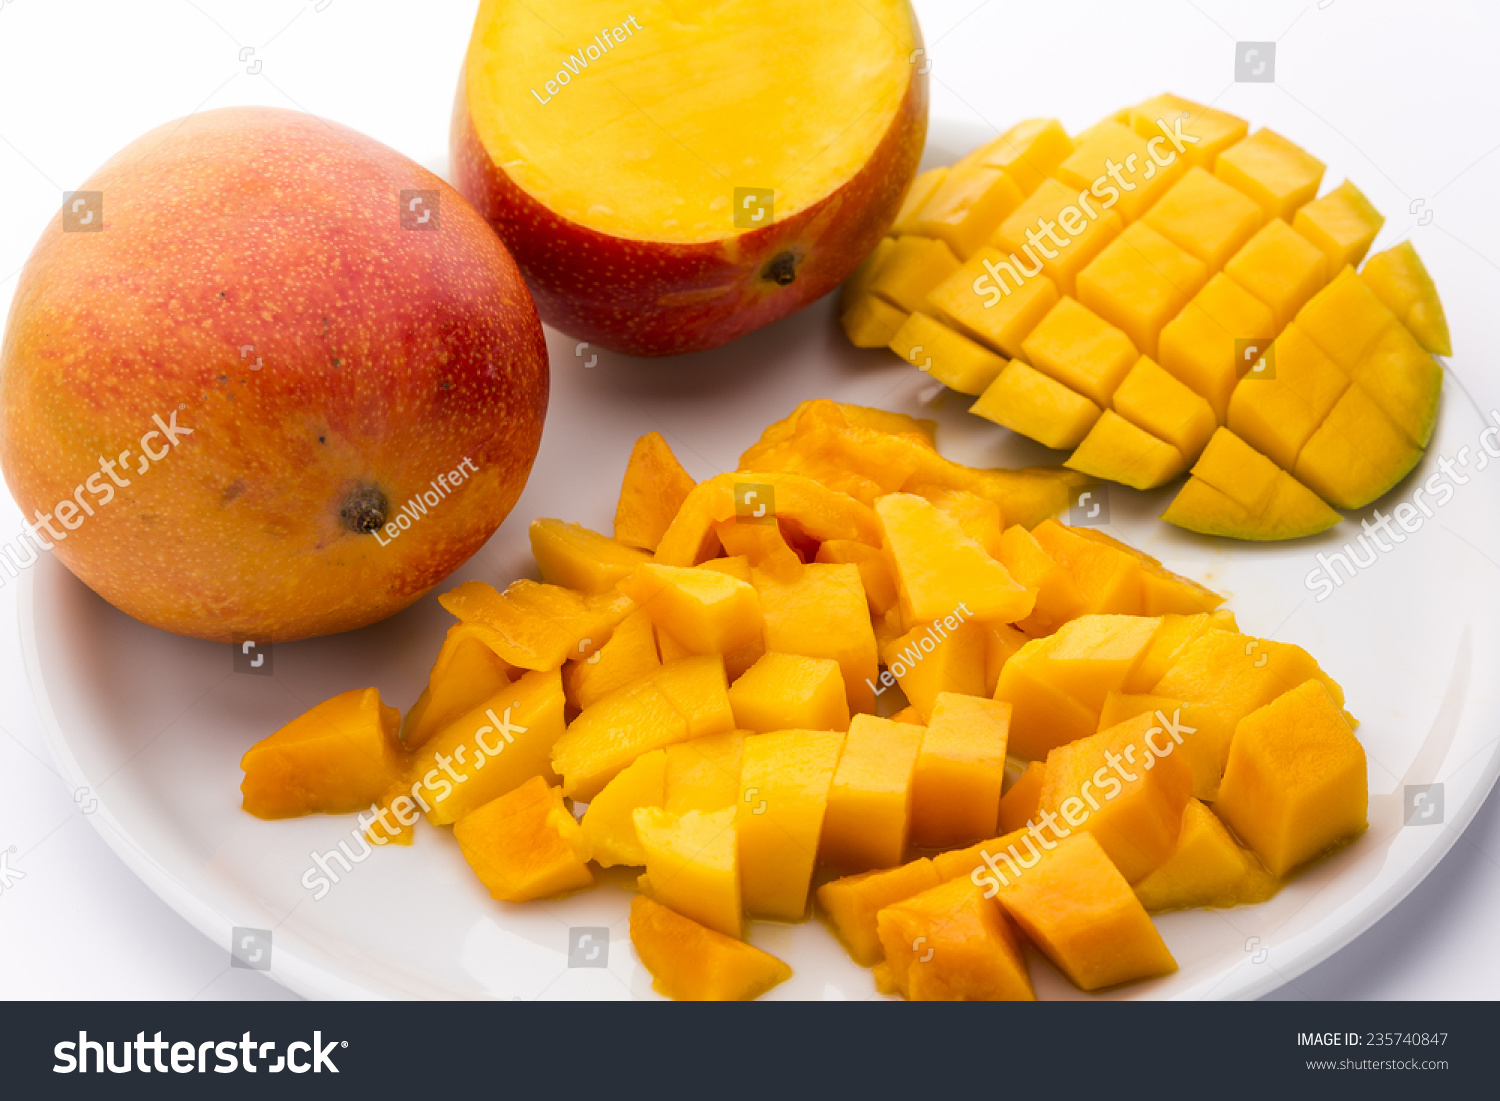 Many Juicy Mango Pulp Cubes A Third Of A Mango Cut In A Rectangular Pattern  Many 20160323cuttingmangovickywasikpeelingg